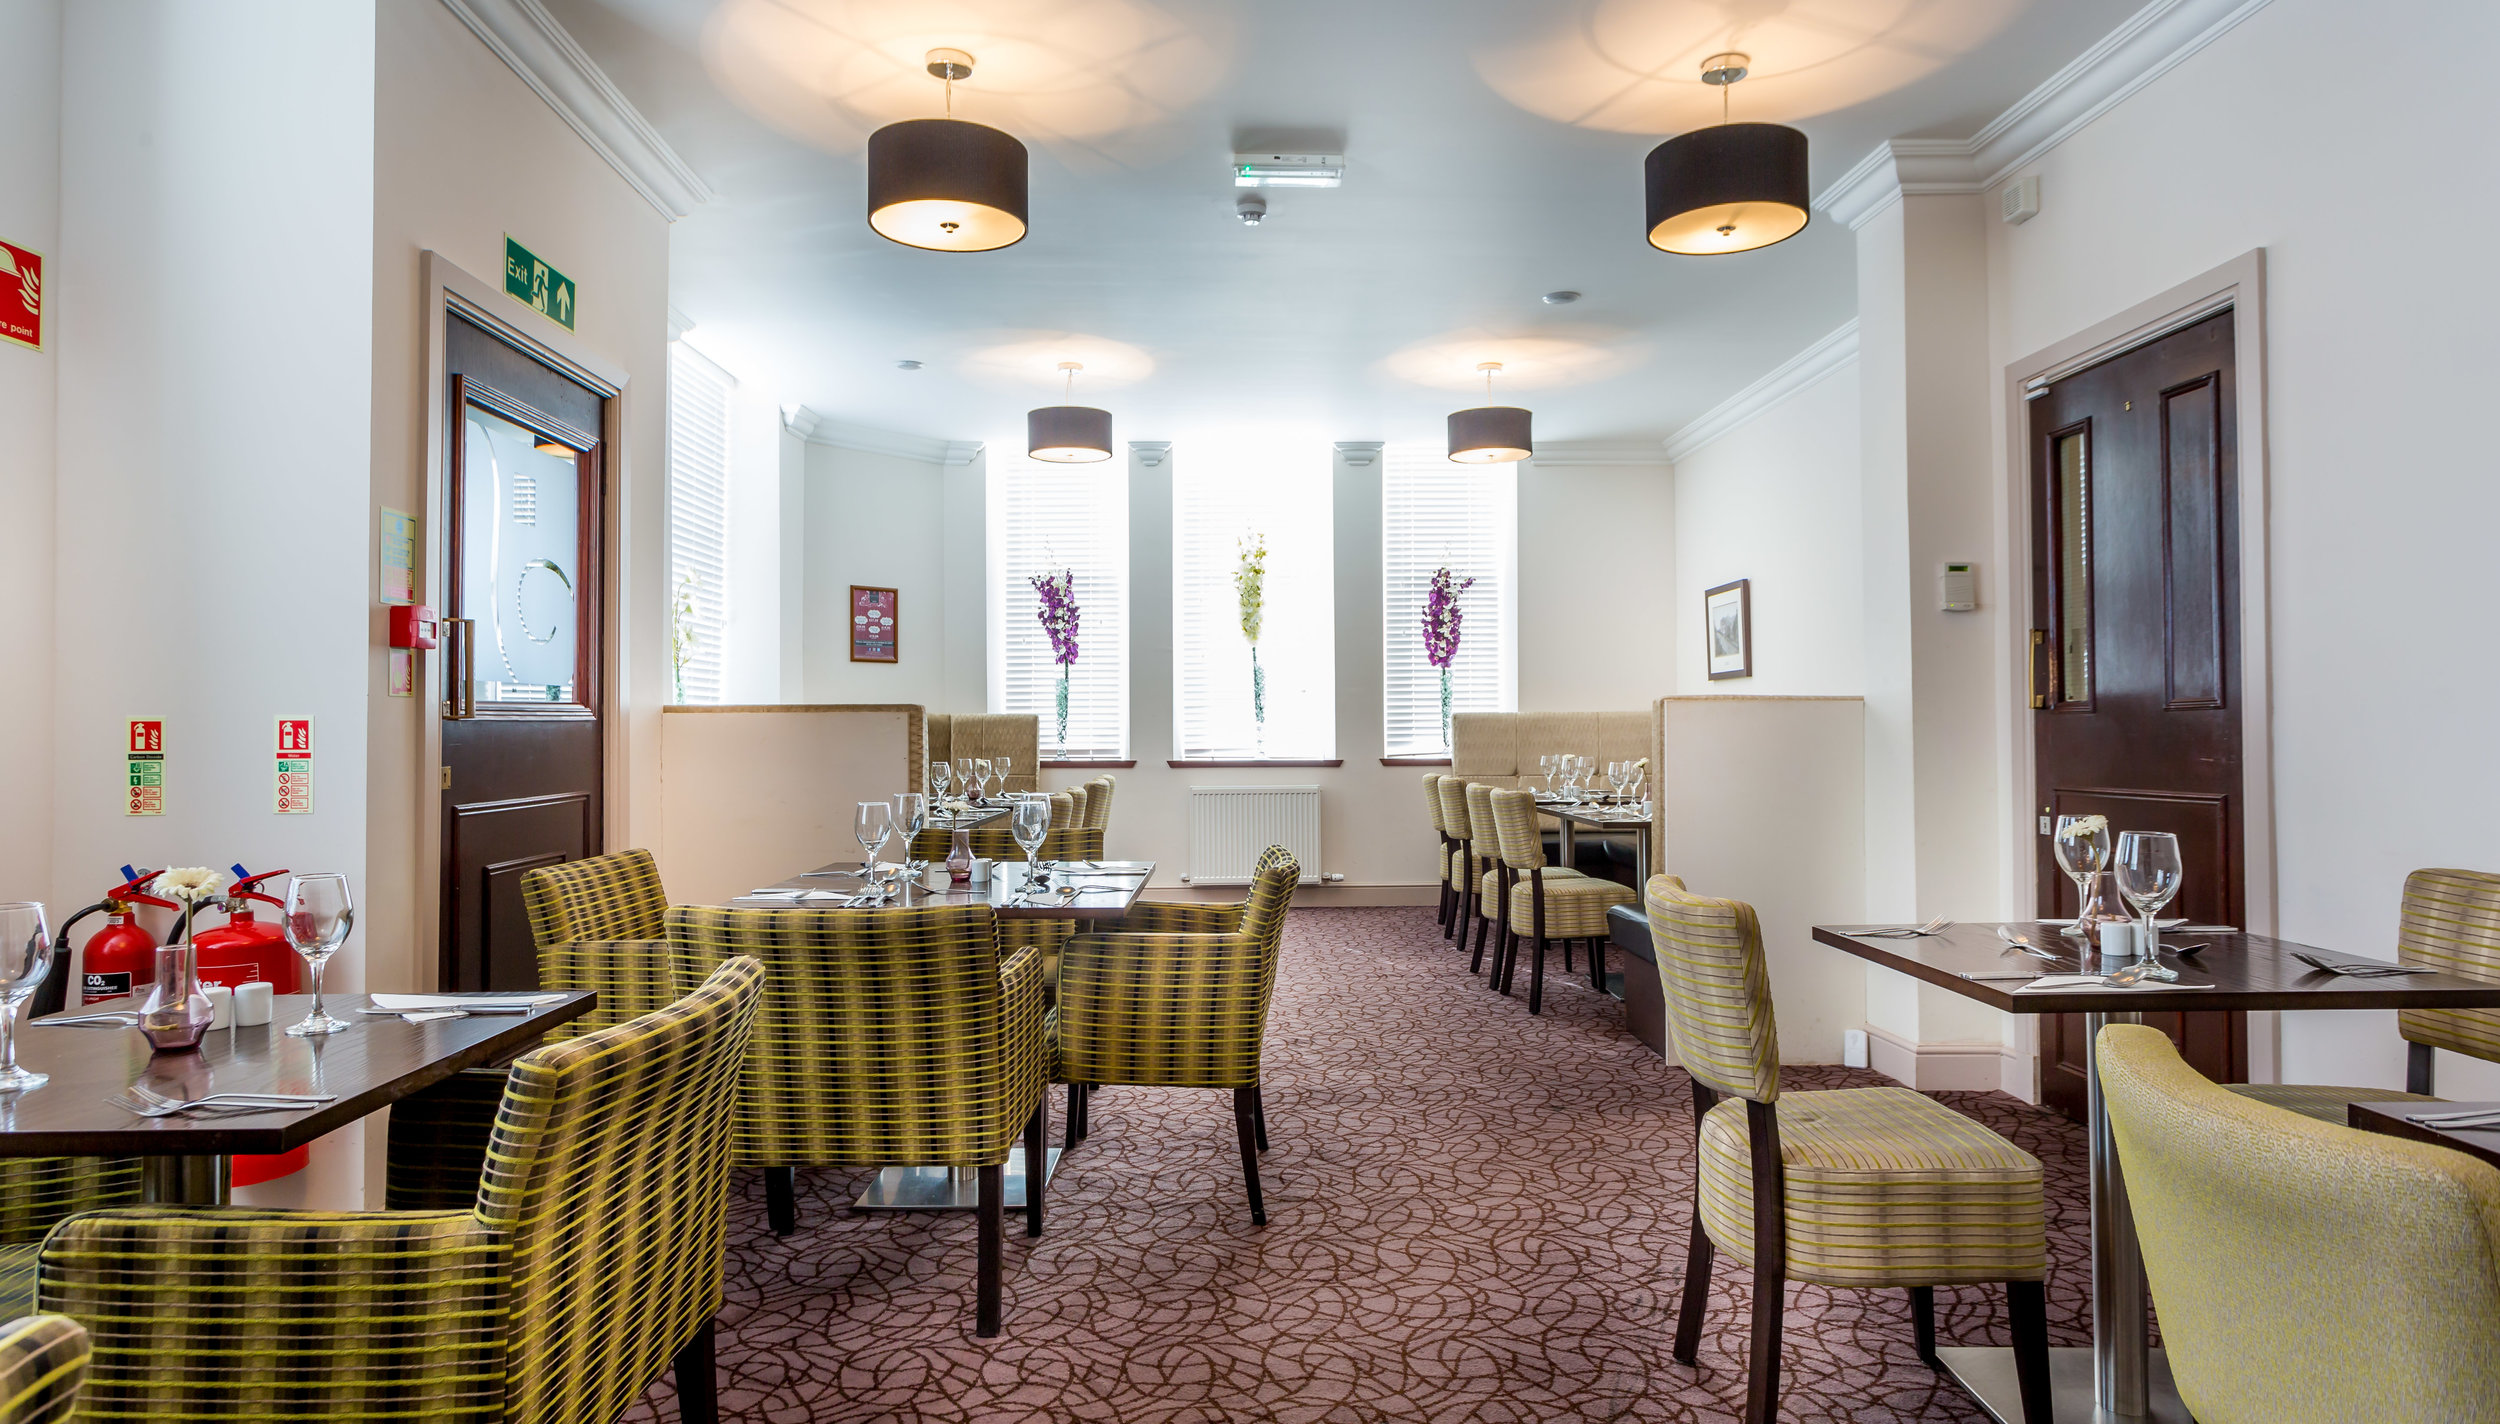 Station-Hotel-Shotts-Interior-Photography-28.jpg